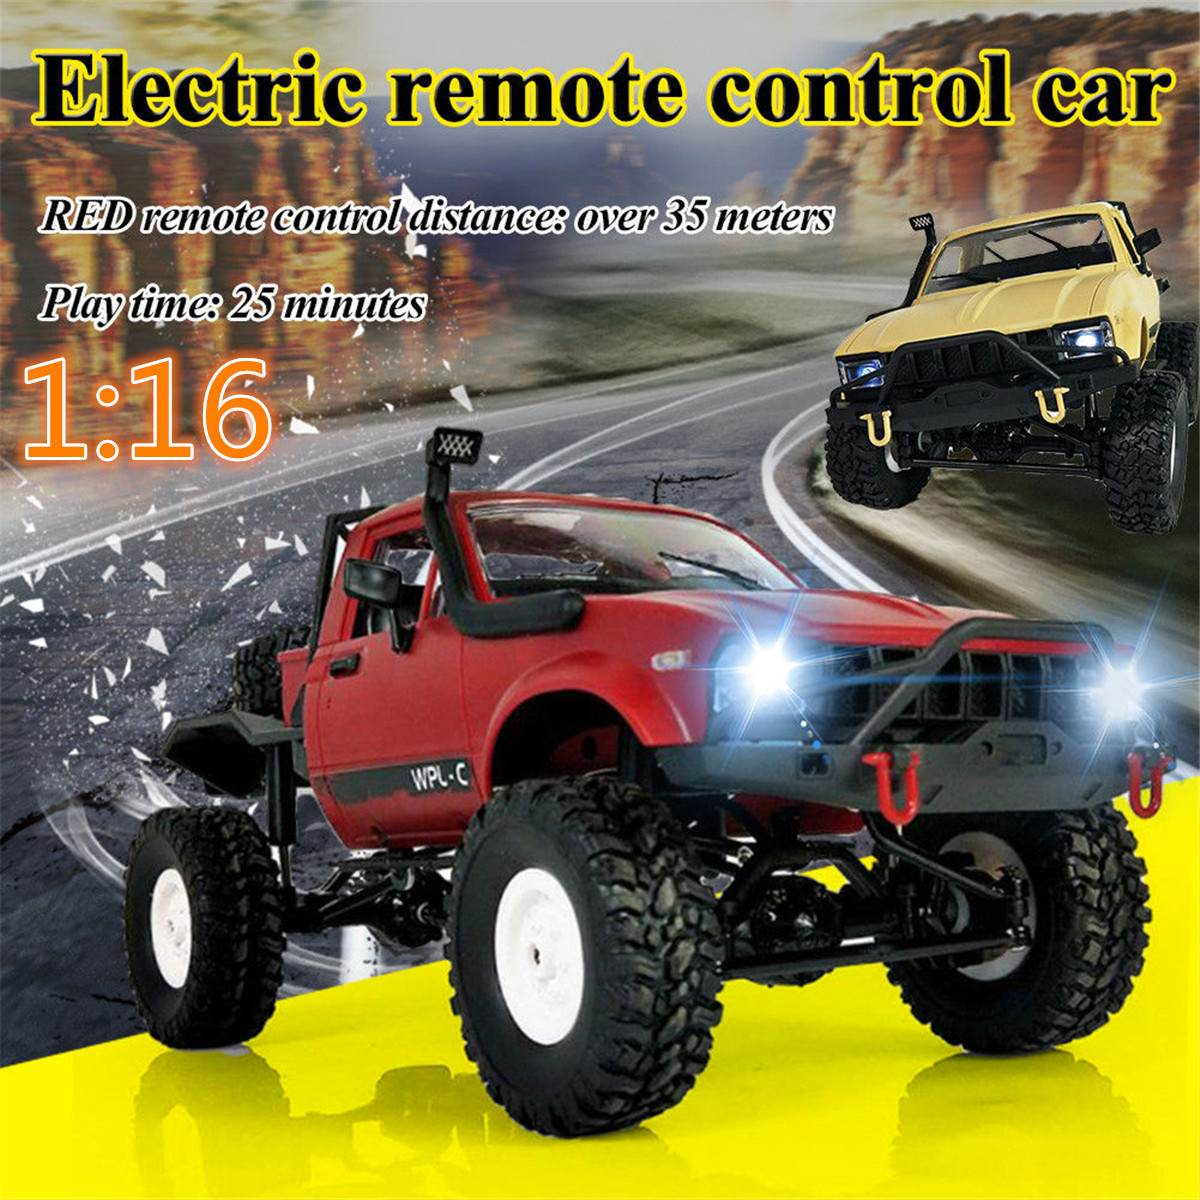 1:16 2.4G 4WD Remote Controller Car RC Car Crawler Off-road Climb Vehicle Toy For Boy Kids Gifts Sports Vehicle Model Toys